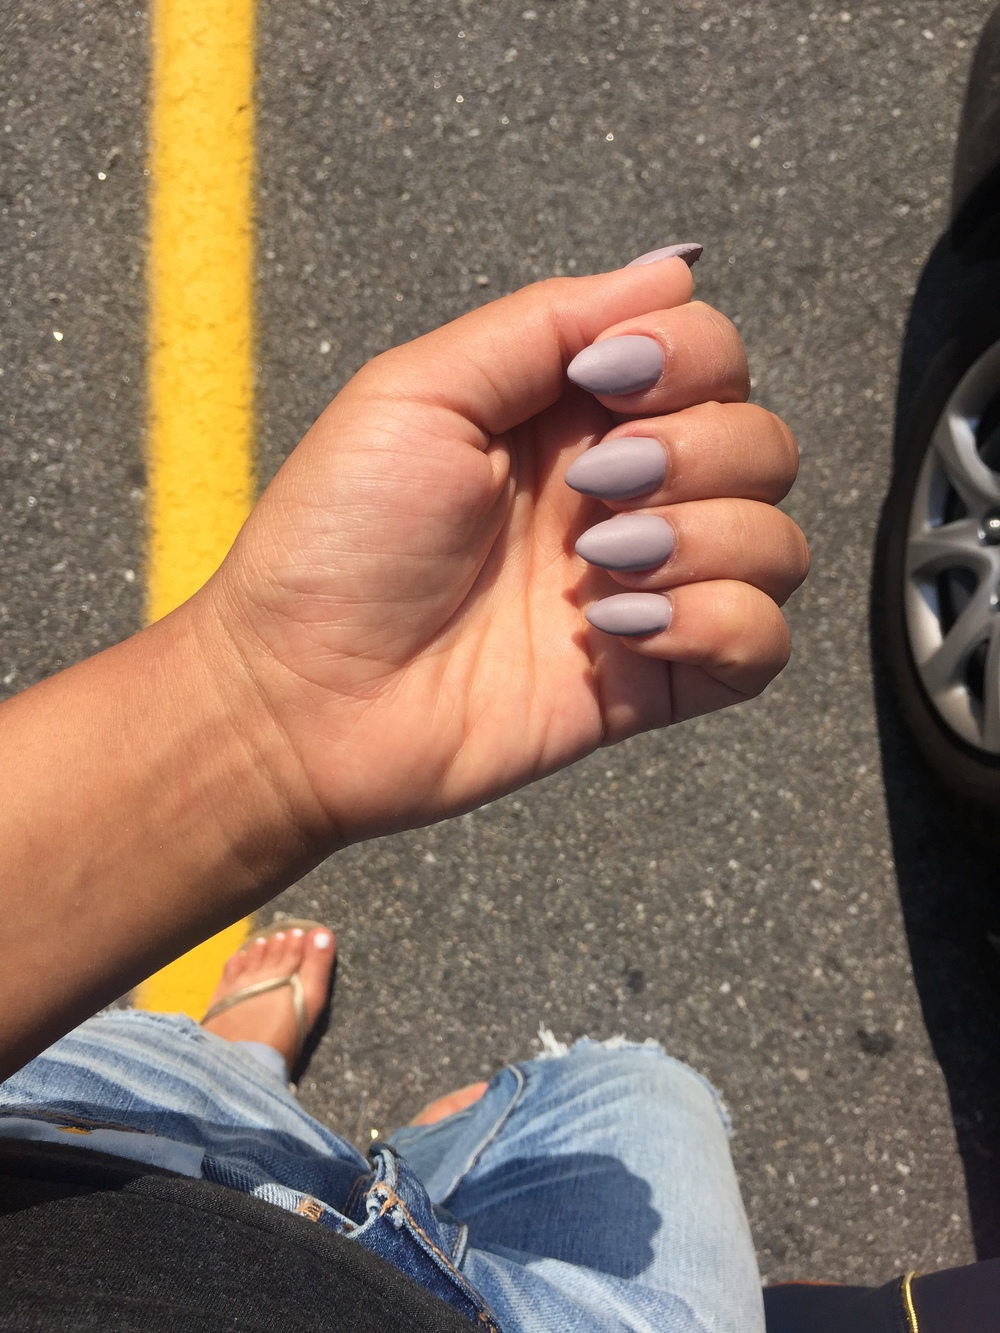 Start up dress code? 1. Shoes must not be sneakers. 2. Nails must be on fleek.